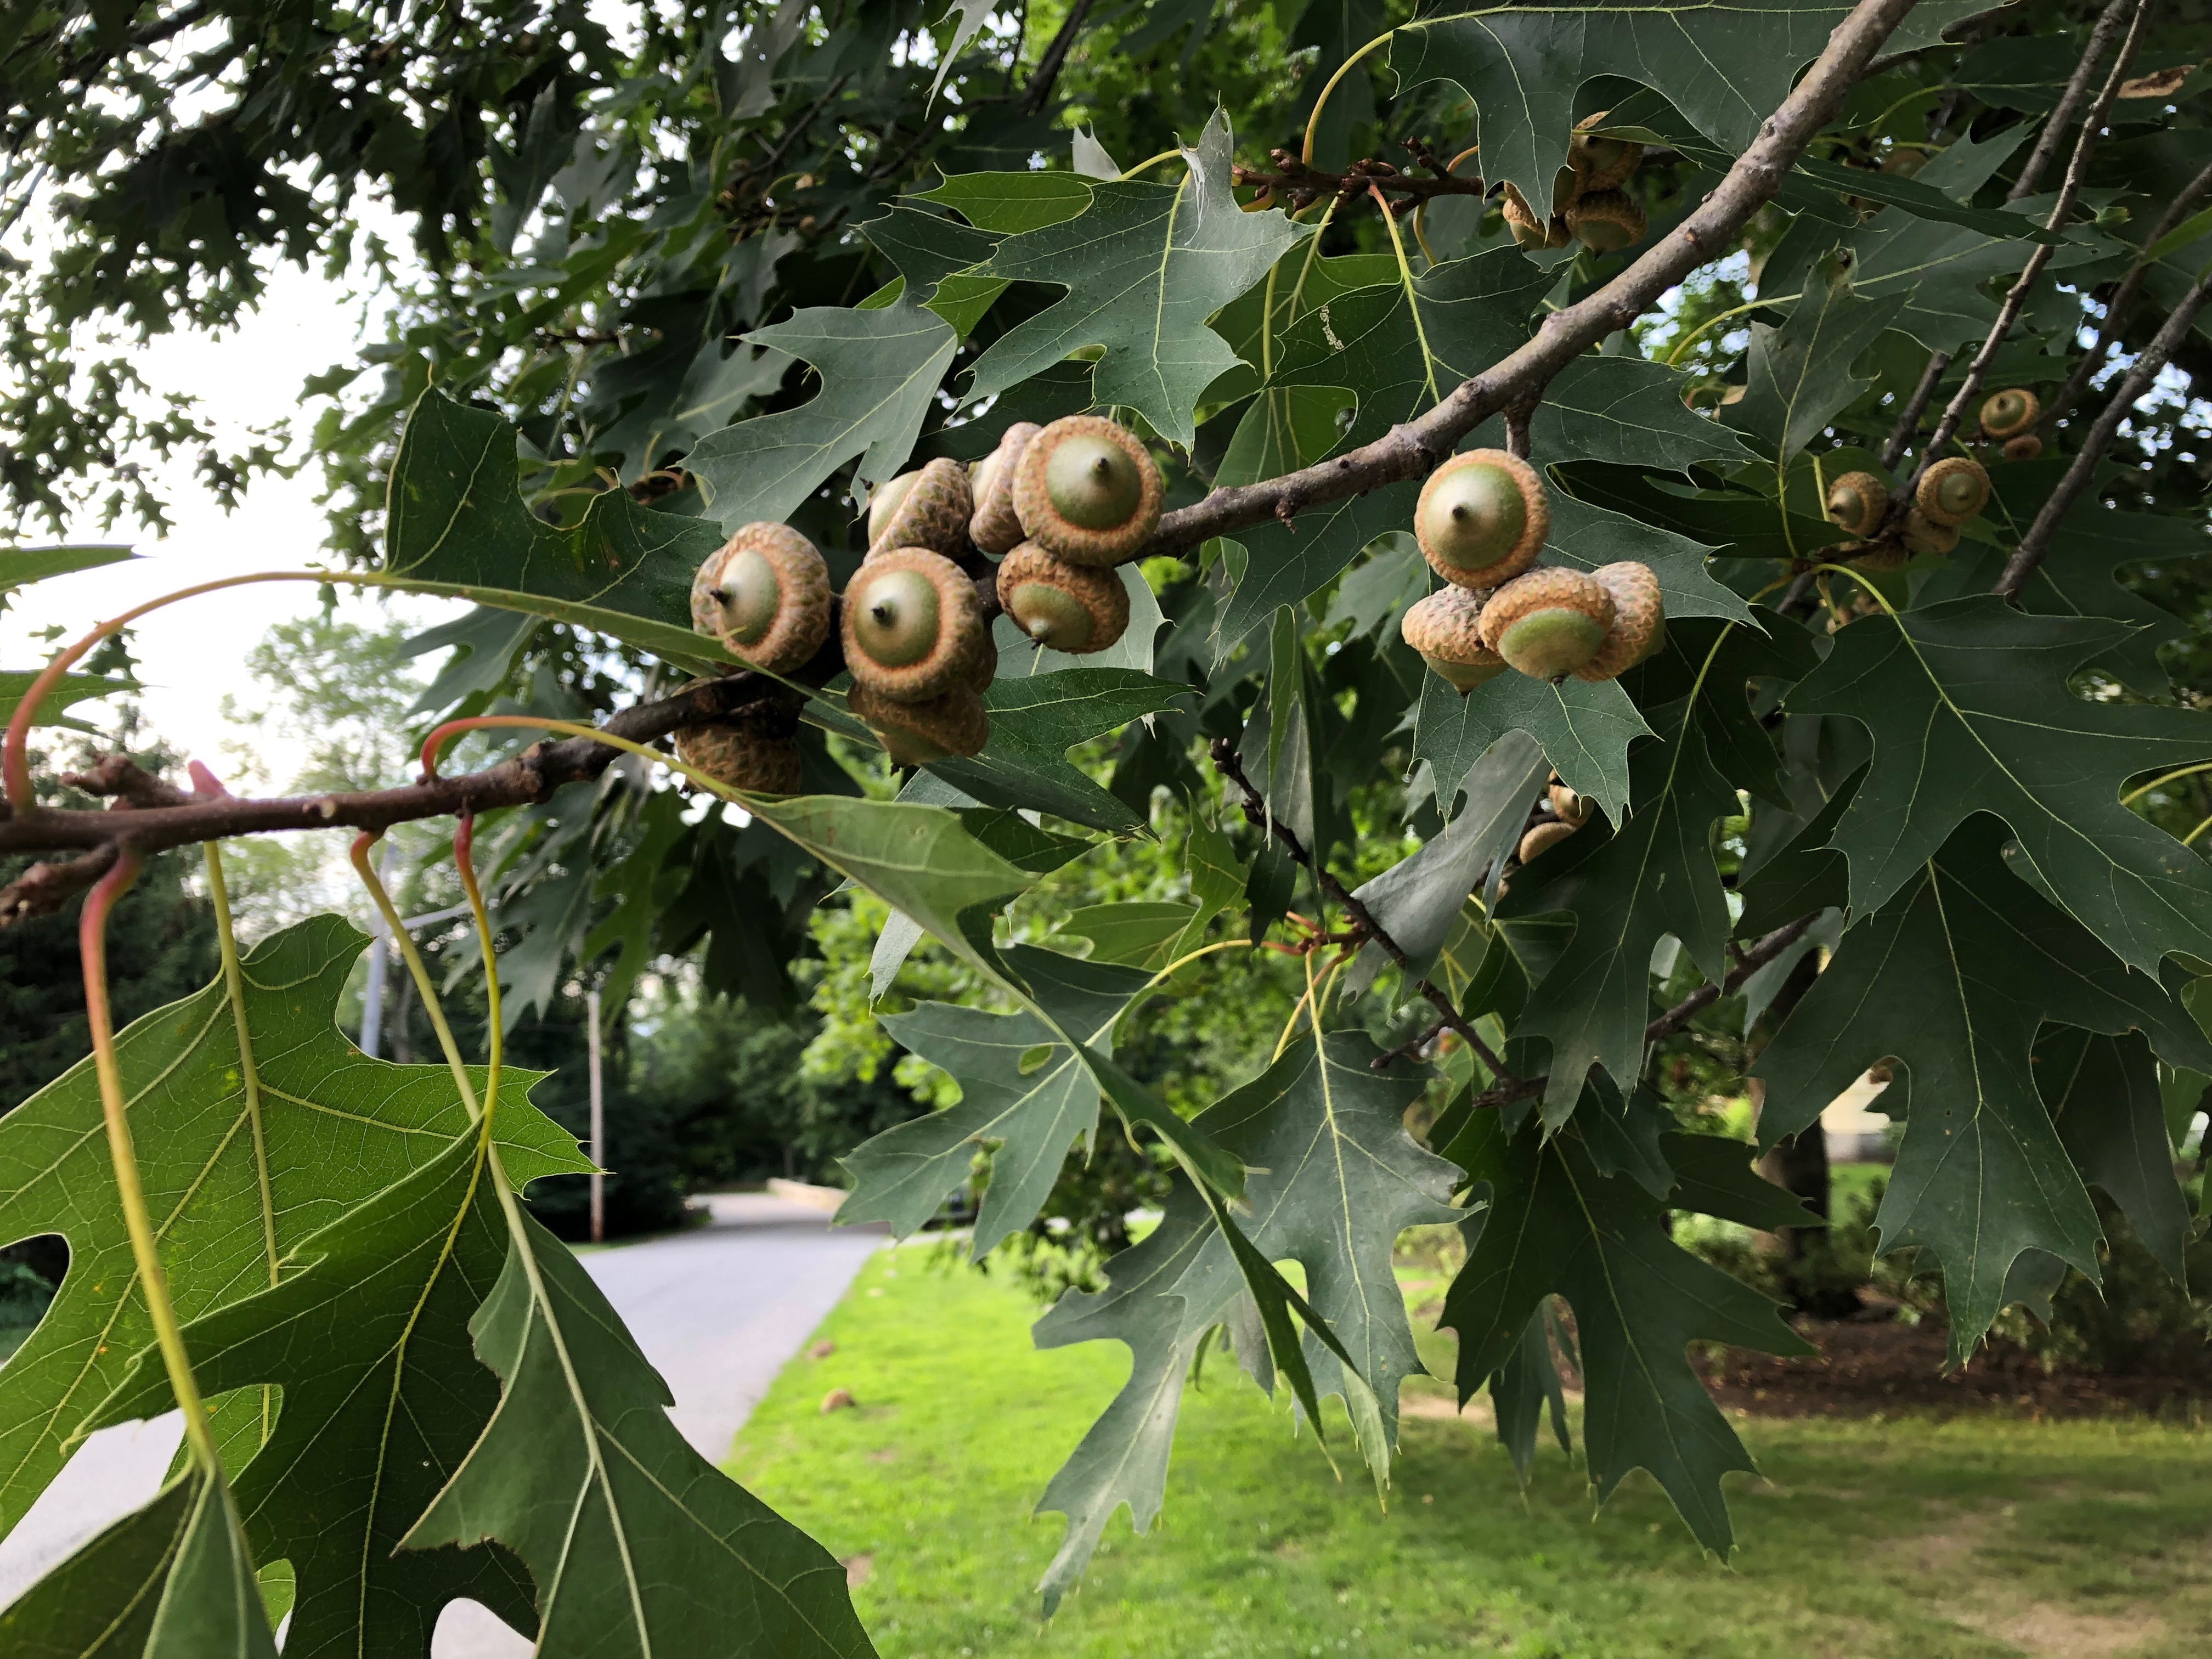 071519-acorns-in-July